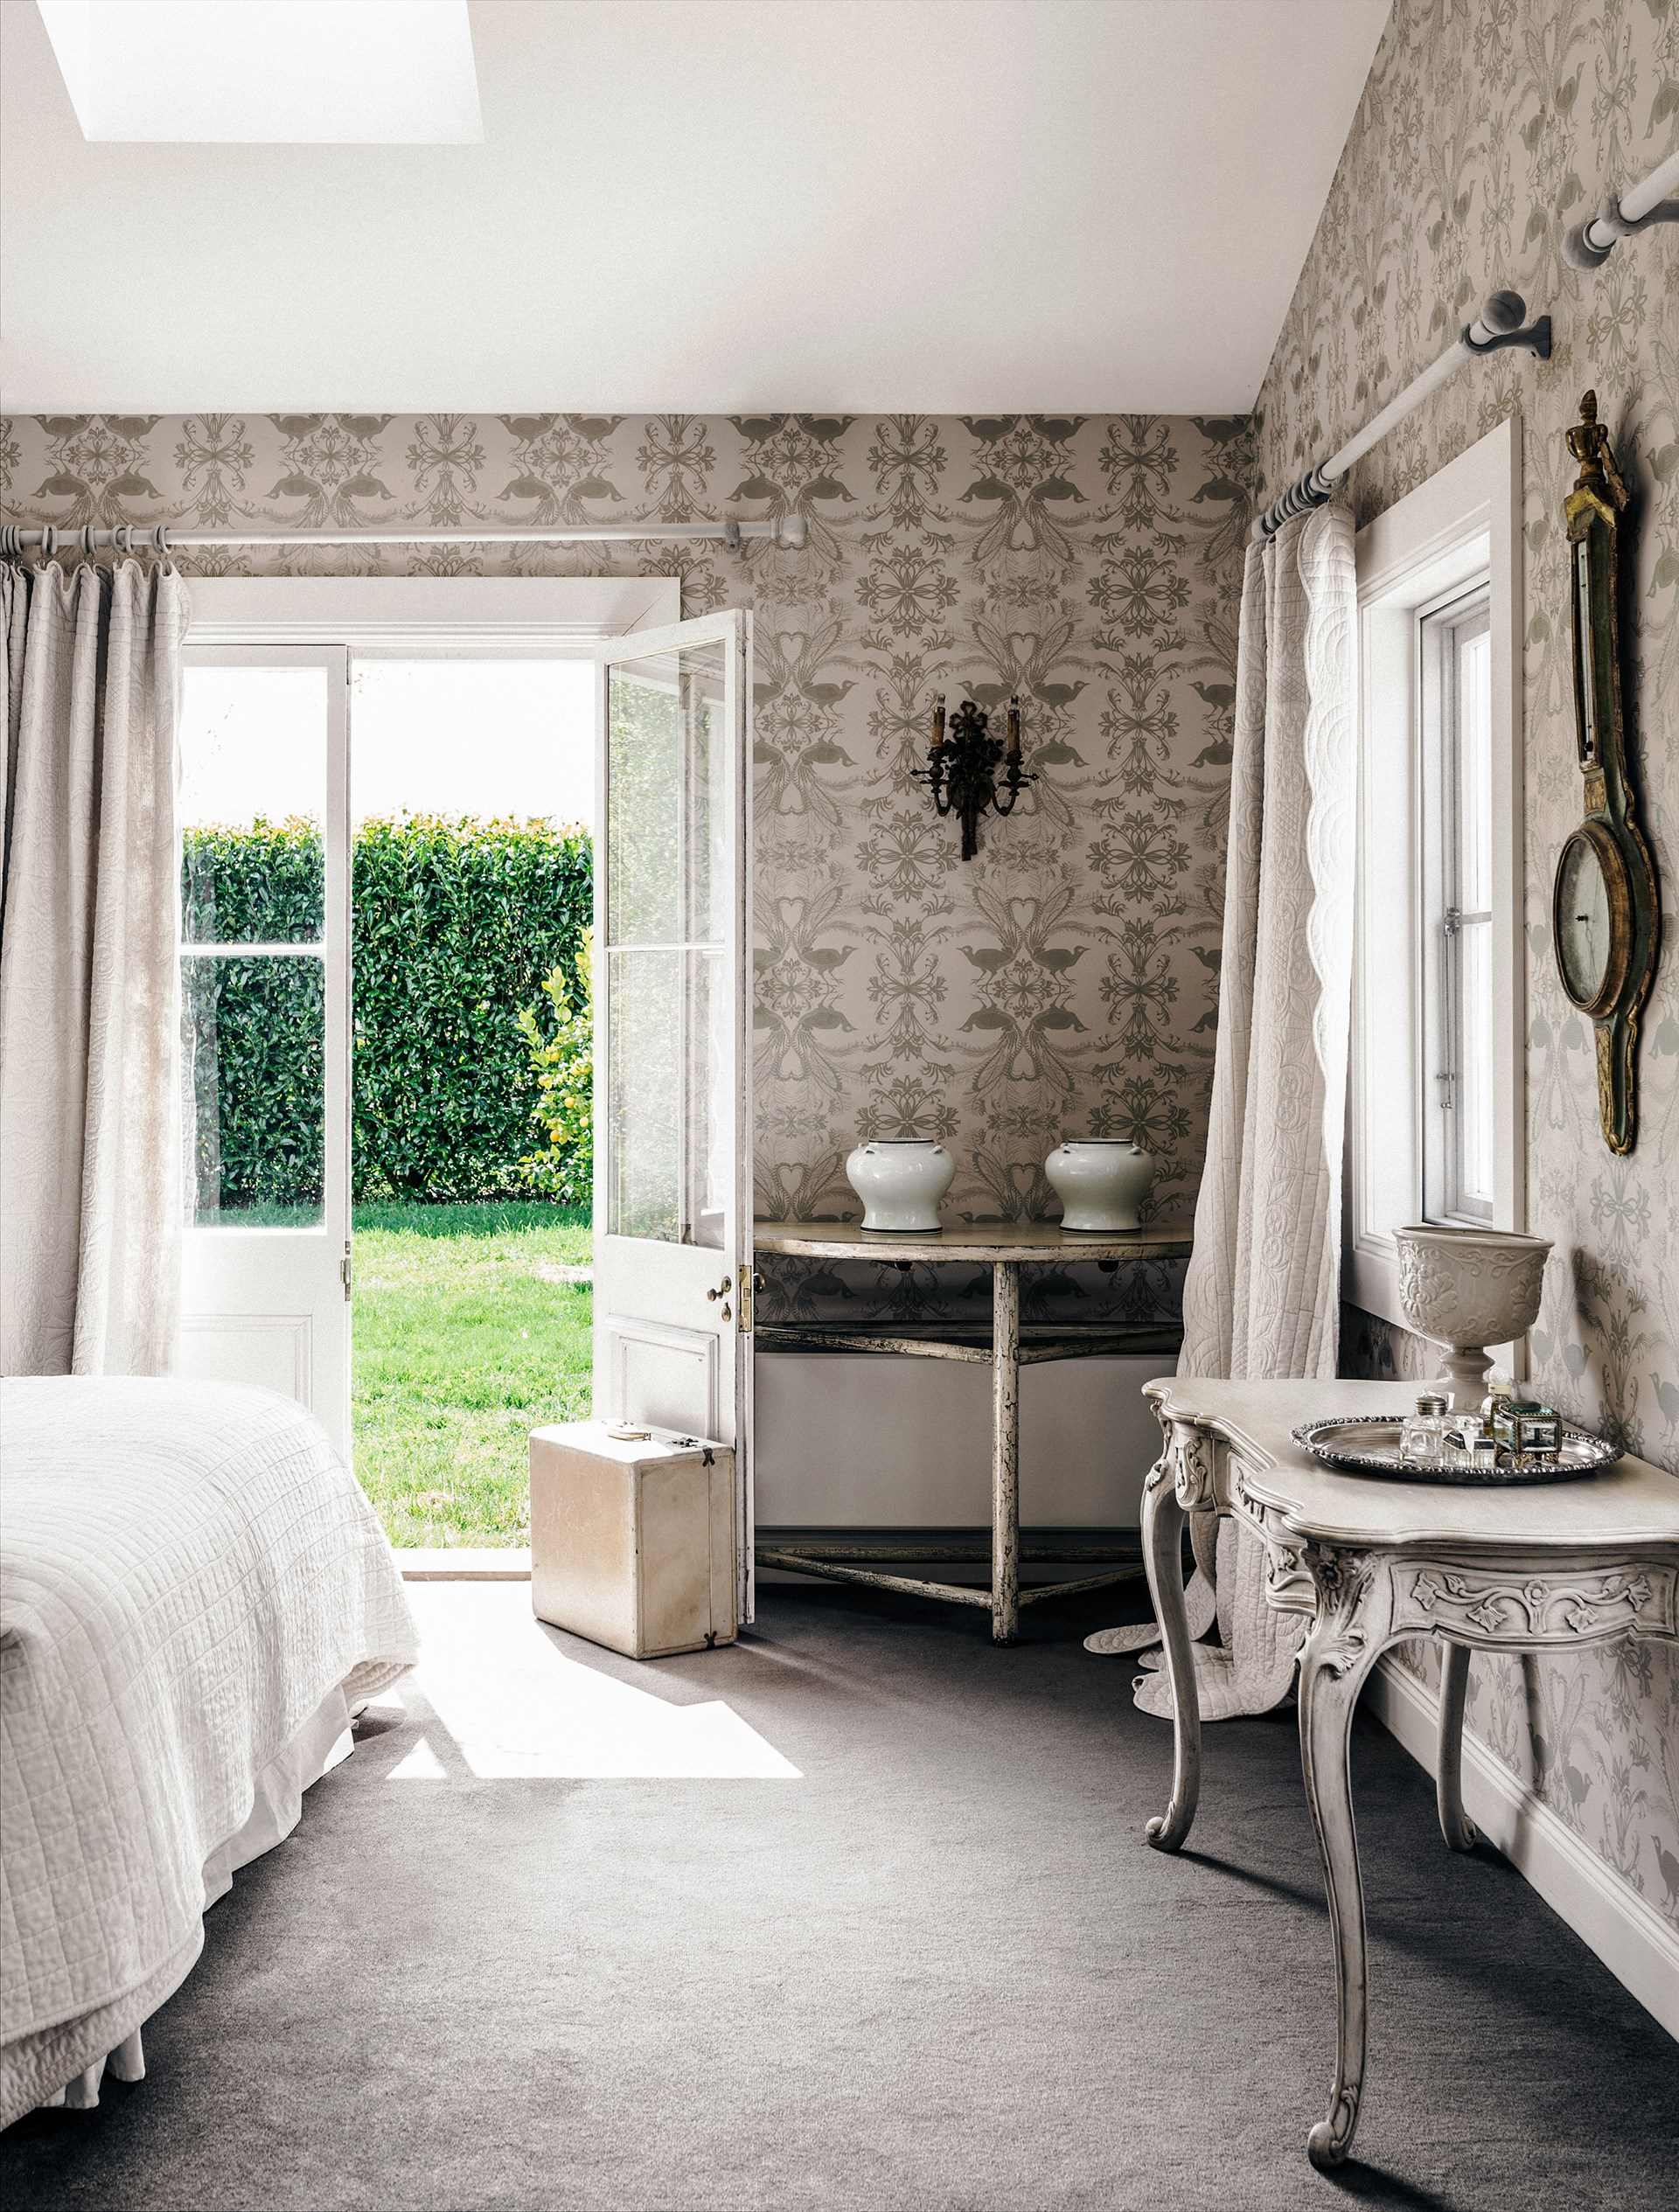 The subdued neutral hues of this chic French wallpaper add a classic feel to this [country home in the Southern Highlands](http://www.homestolove.com.au/melissa-penfolds-french-inspired-country-house-2537). *Photo: Felix Forest / Belle*